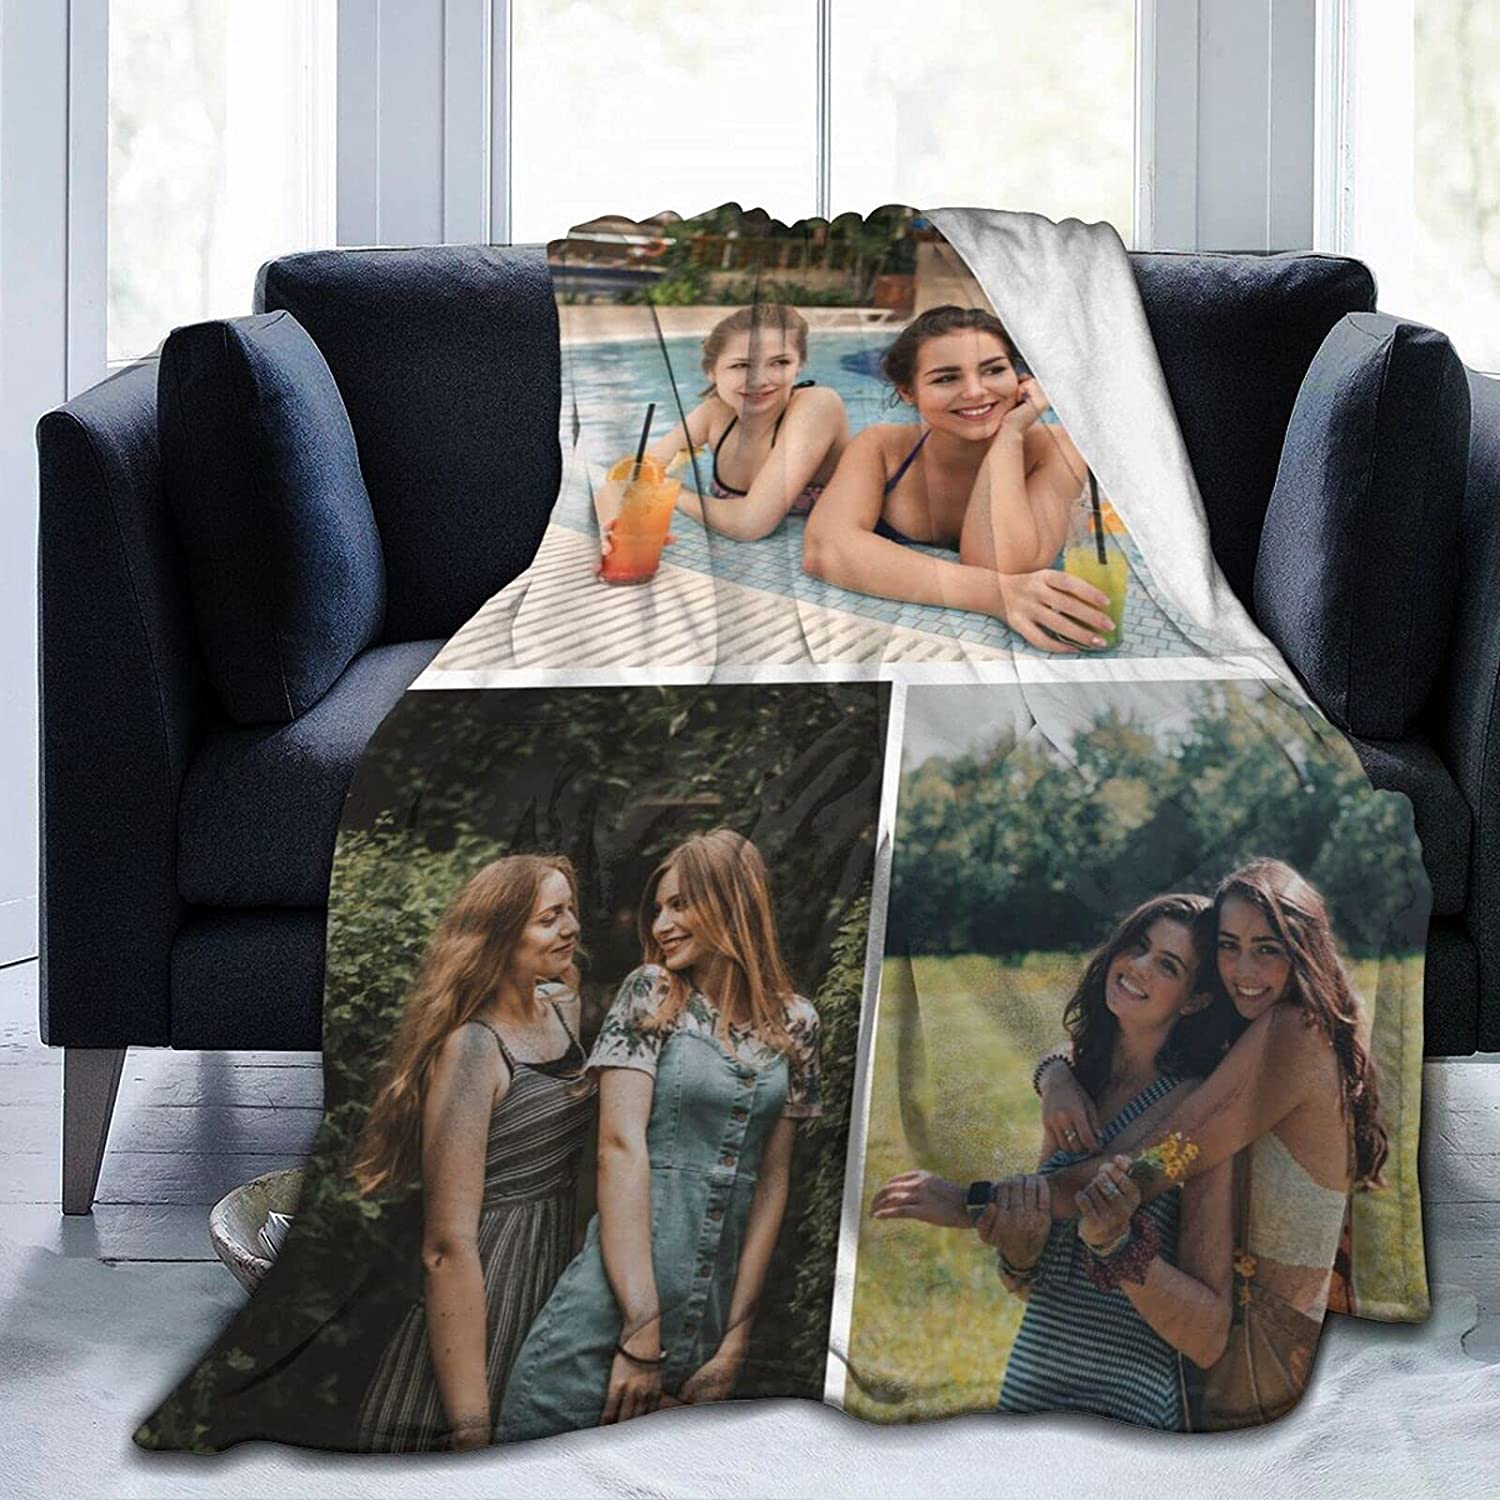 Custom Blankets with Max Max 81% OFF 51% OFF Photos,MOORCOWRY Th Flannel Customized